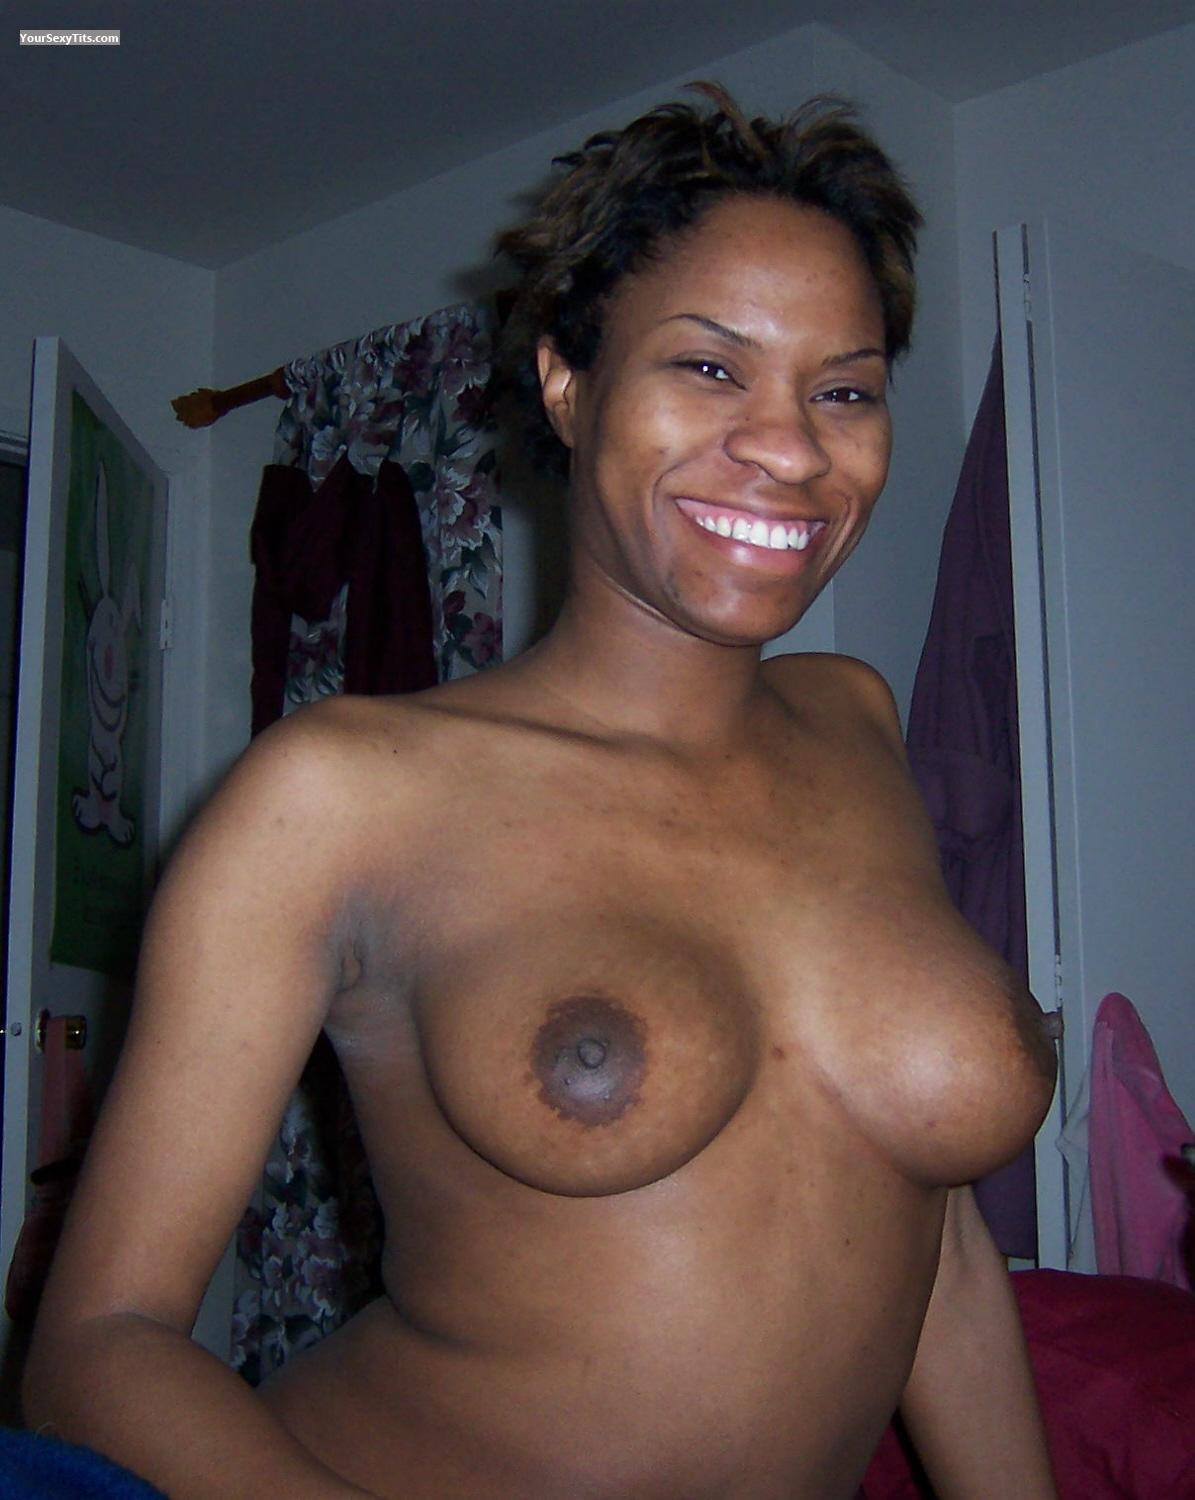 Tit Flash: Big Tits - Topless Zip from United States